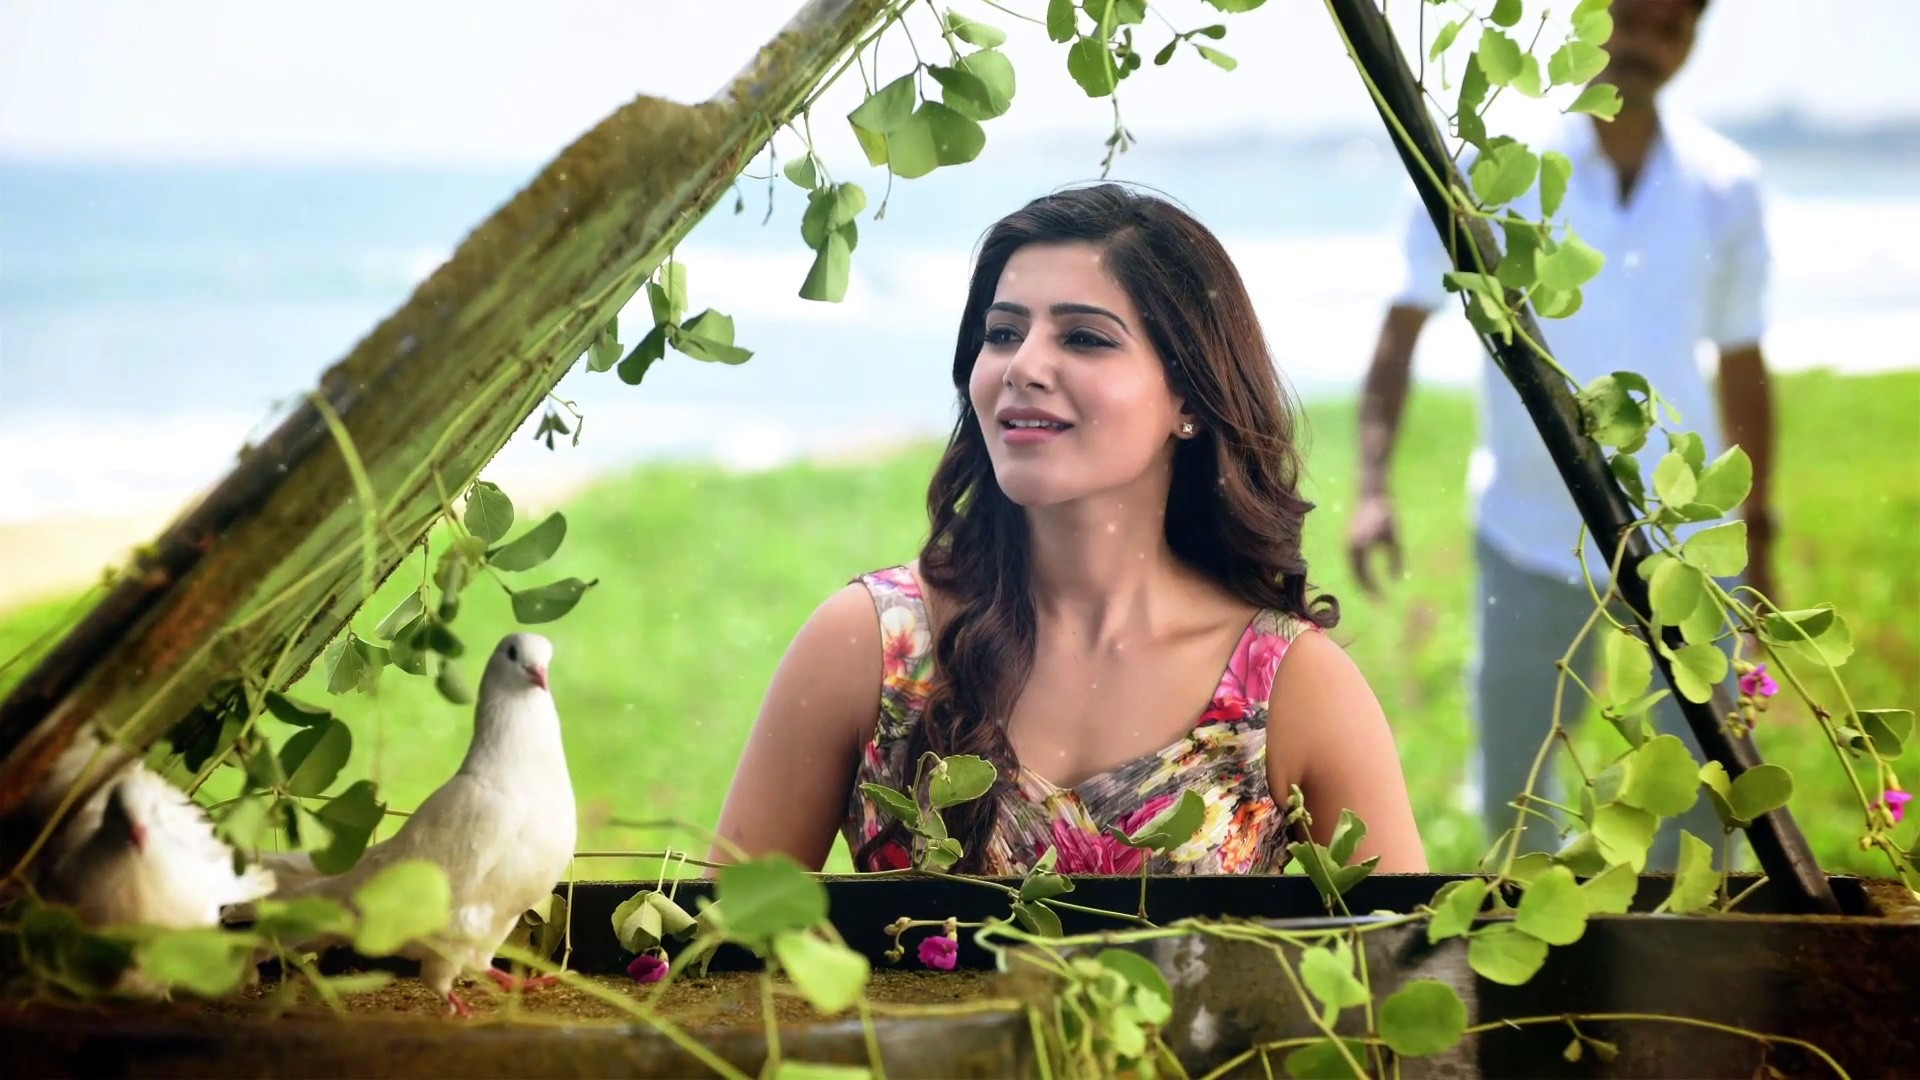 Cute Baby Ultra Hd Wallpapers Samantha In Theri Wallpapers Hd Wallpapers Id 17525